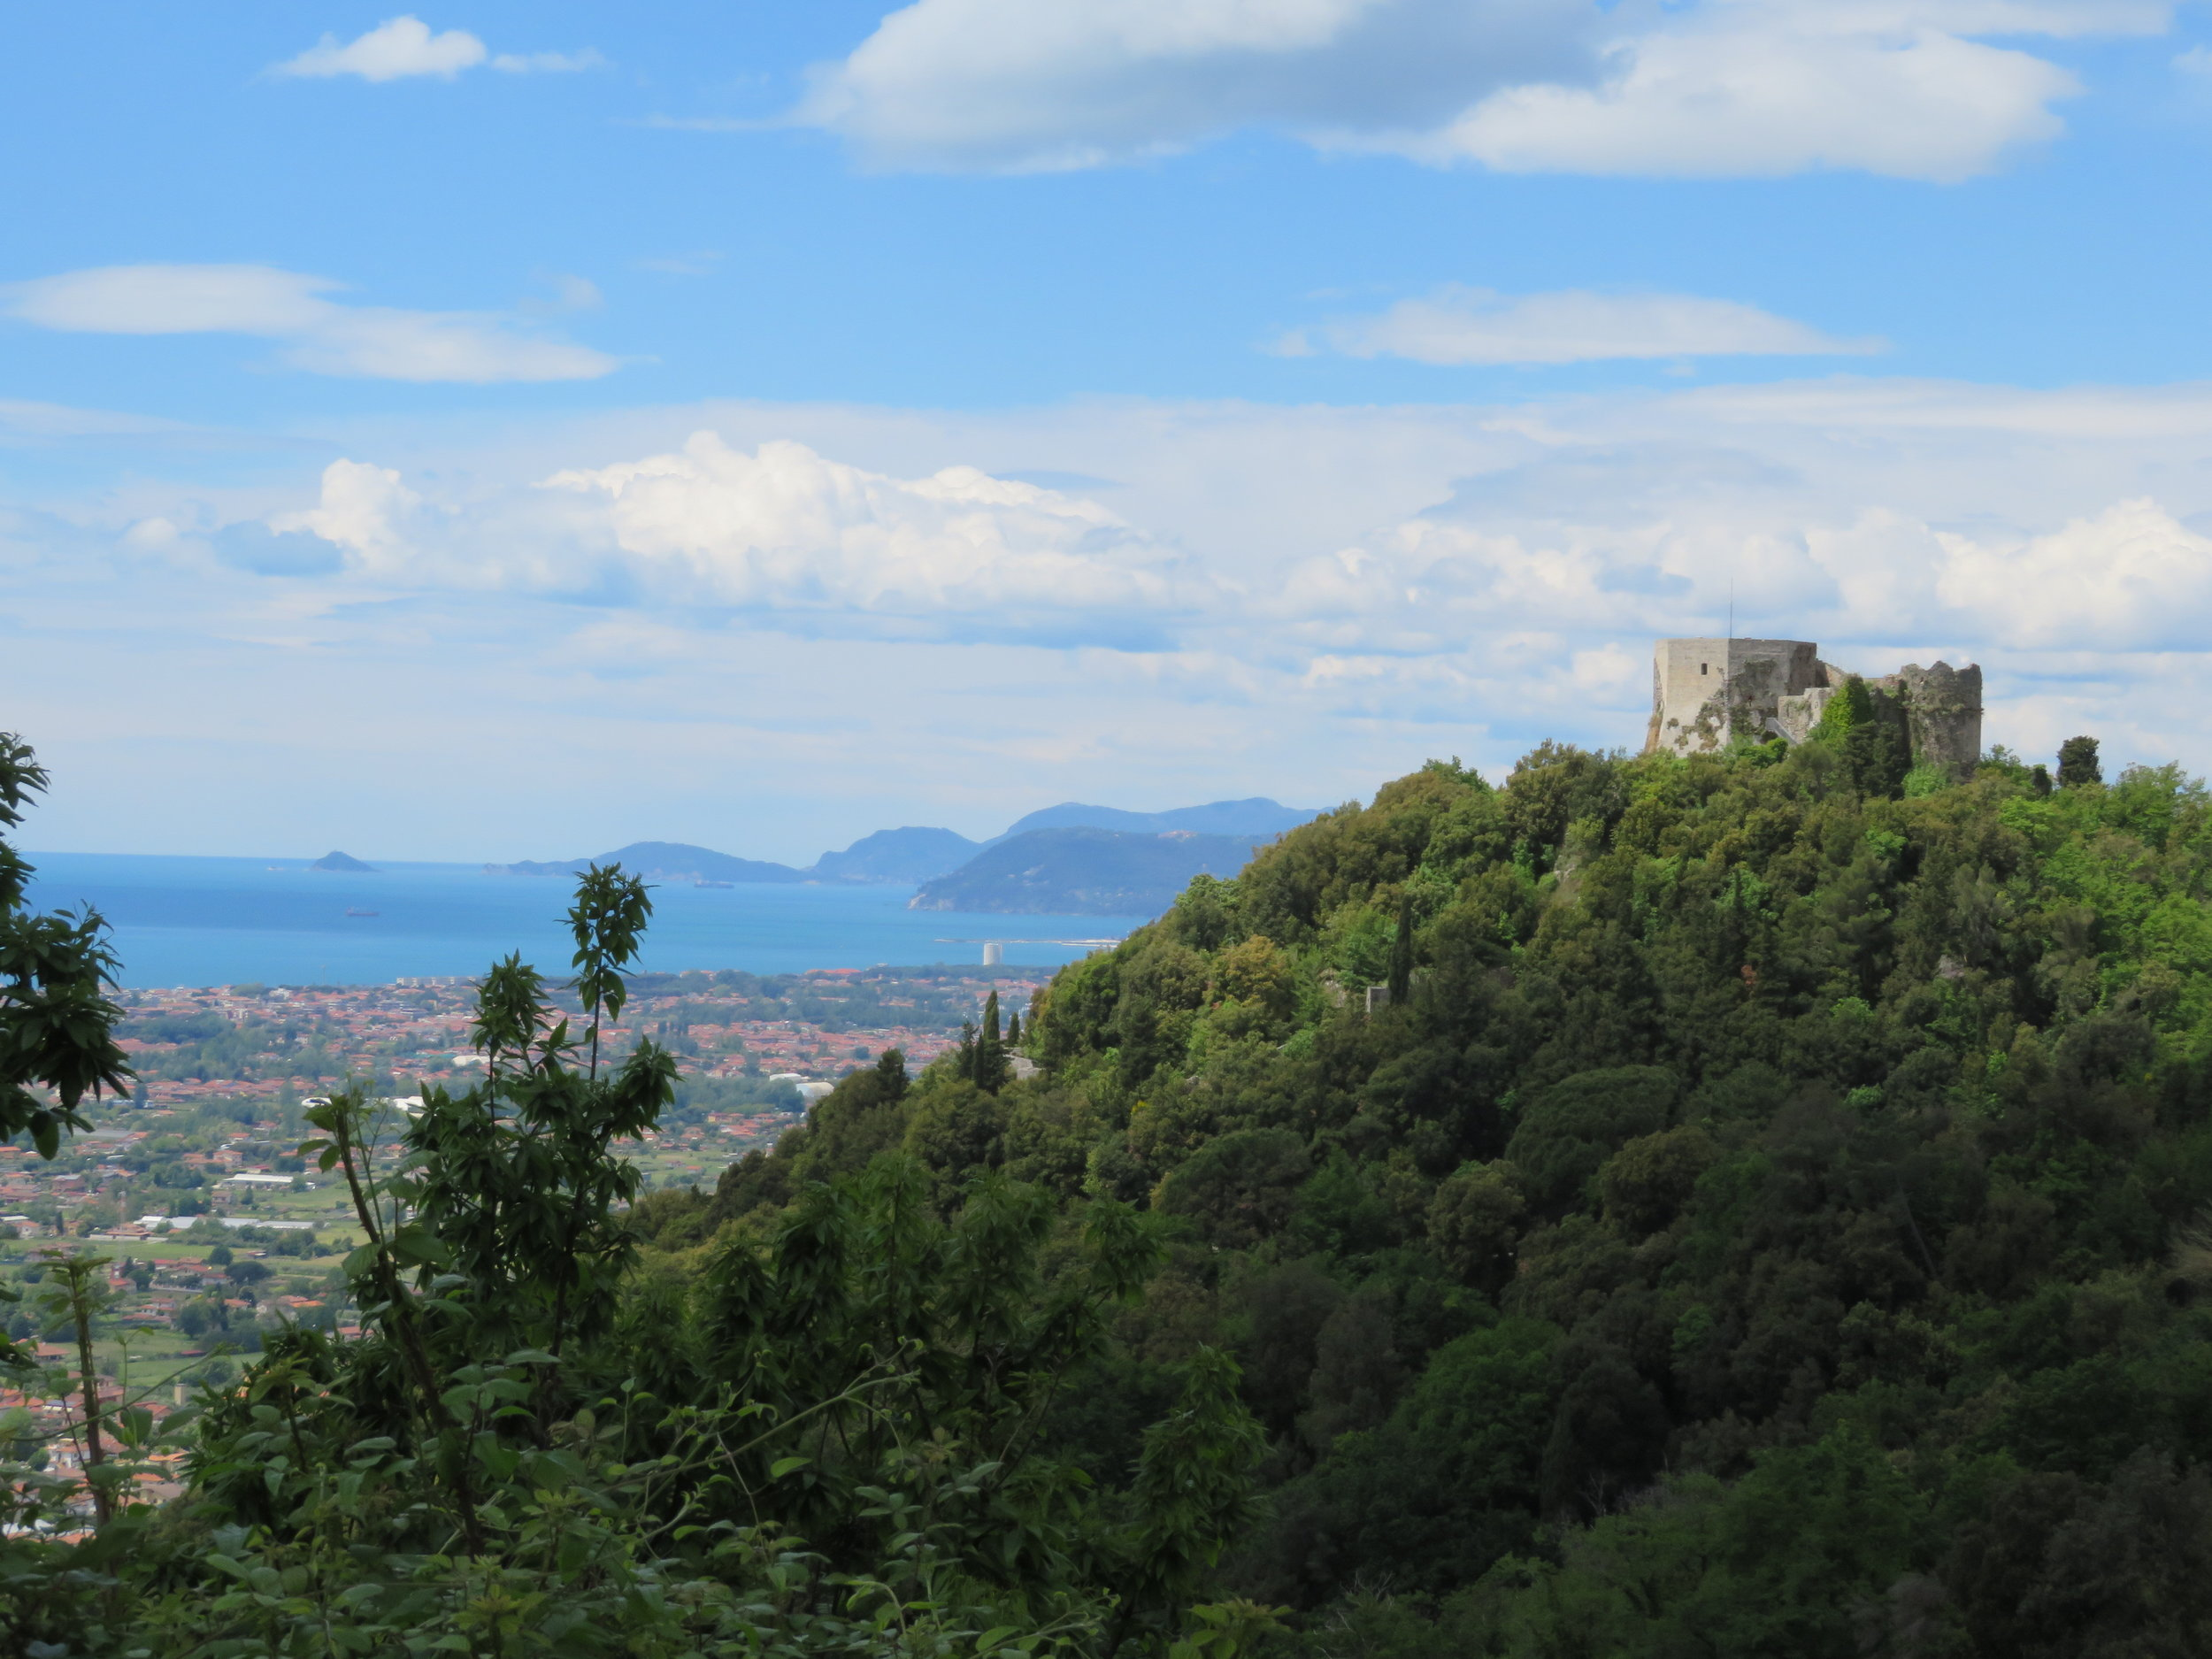 There are mountains all around us now except to the west where the Ligurian Sea (the Mediterranean) lies. The views are simply stupendous. Above, a view of the Ligurian Sea from the path far above